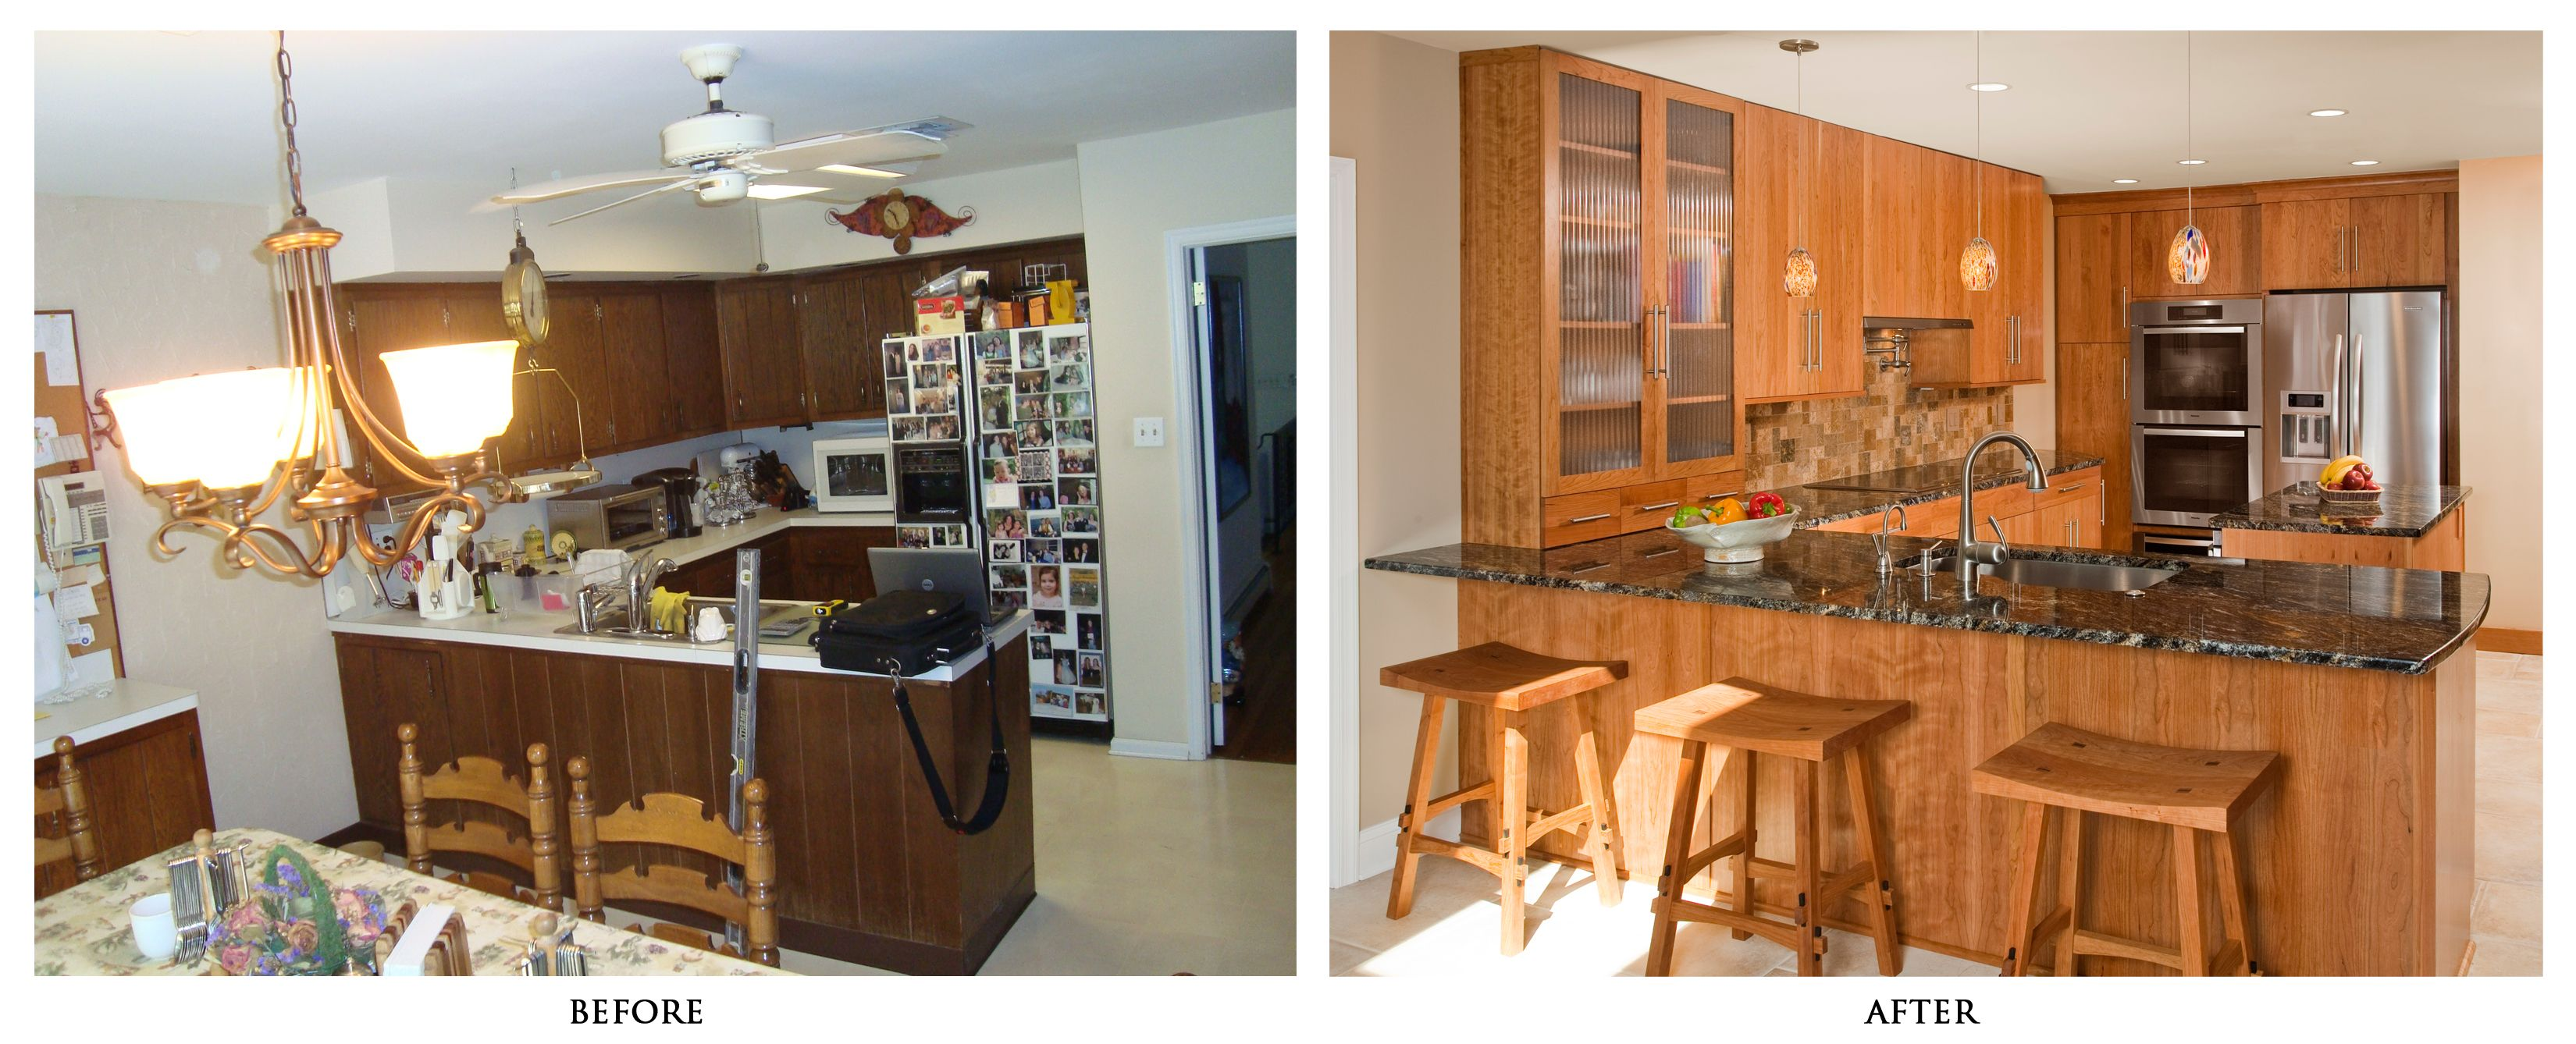 superb Remodelled Kitchens Before And After #4: Amazing Before Amp After Kitchen Remodel The Creativity Exchange - Kitchen  before and after